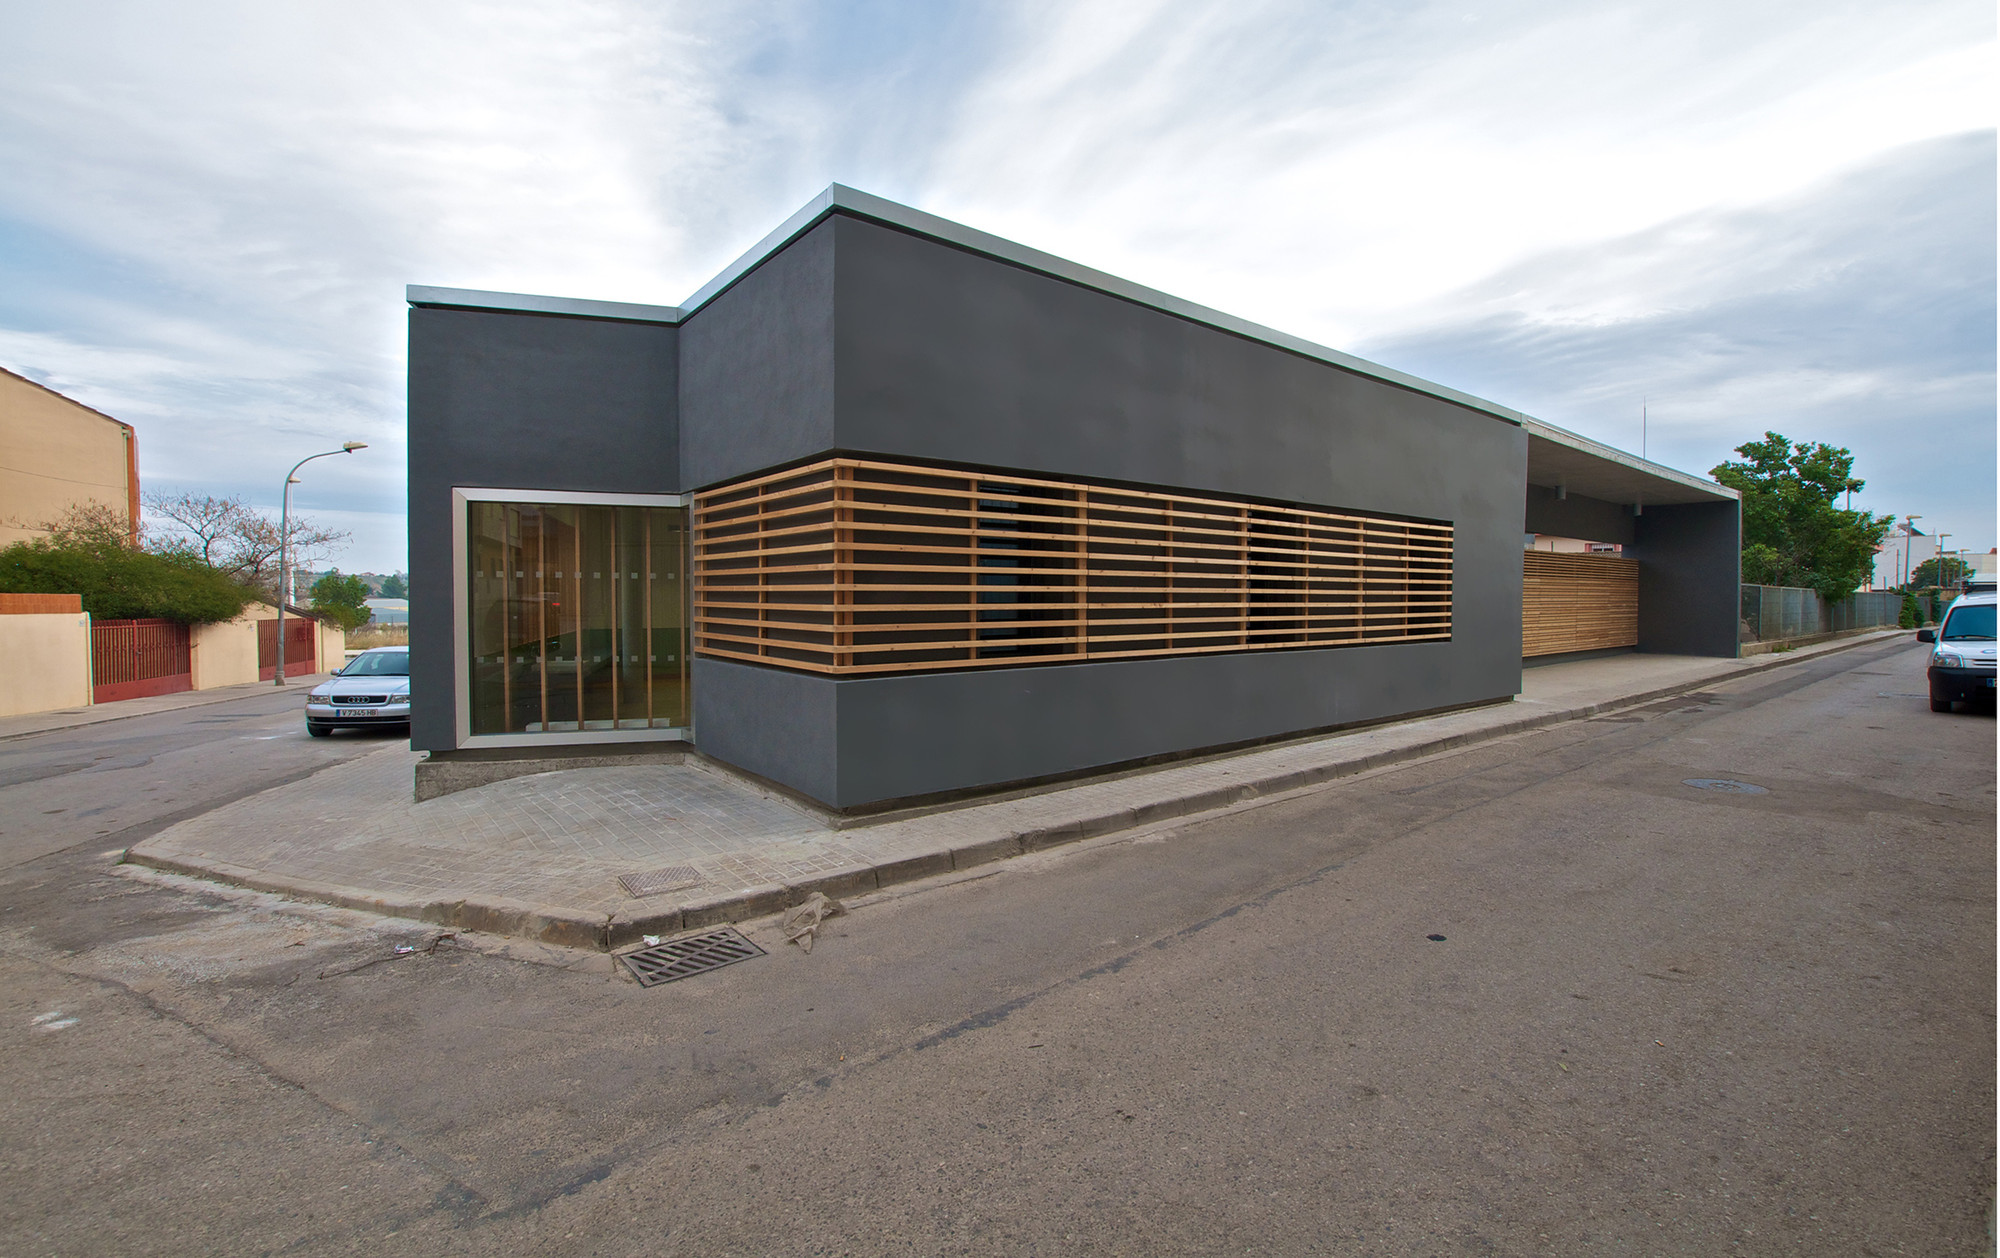 Primary School in Cheste / García Floquet Arquitectos, Courtesy of García Floquet Arquitectos